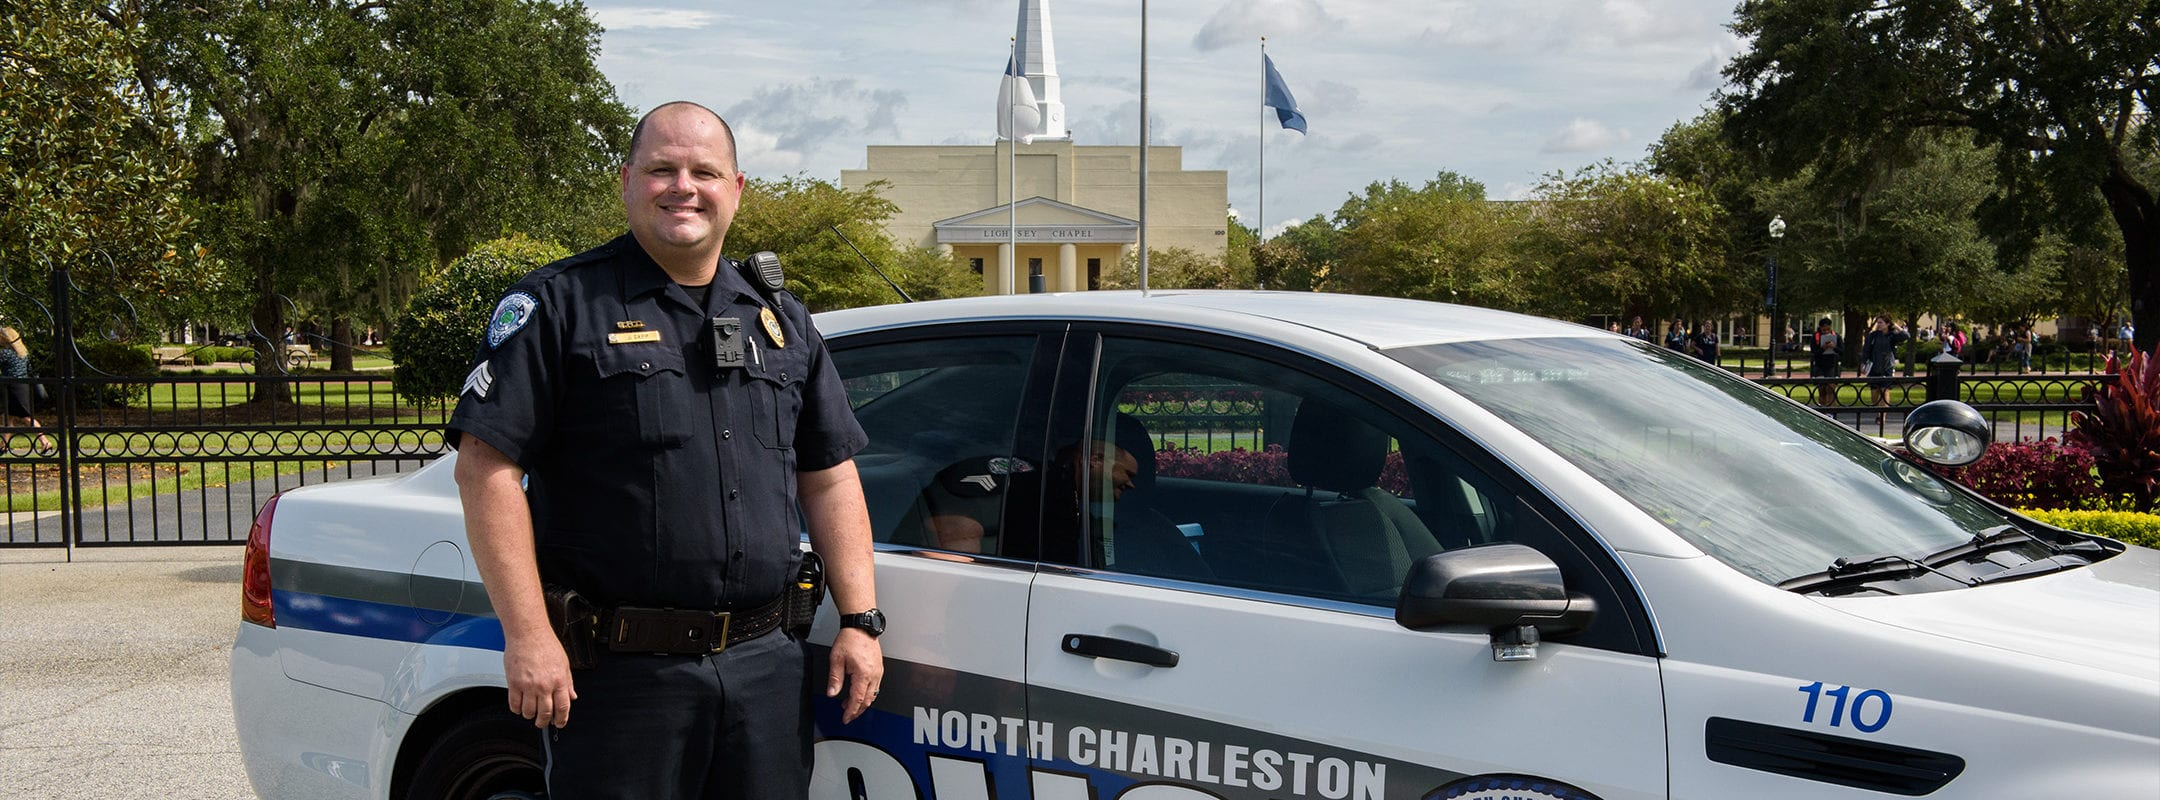 A North Charleston police officer standing with his police car in front of Charleston Southern University.